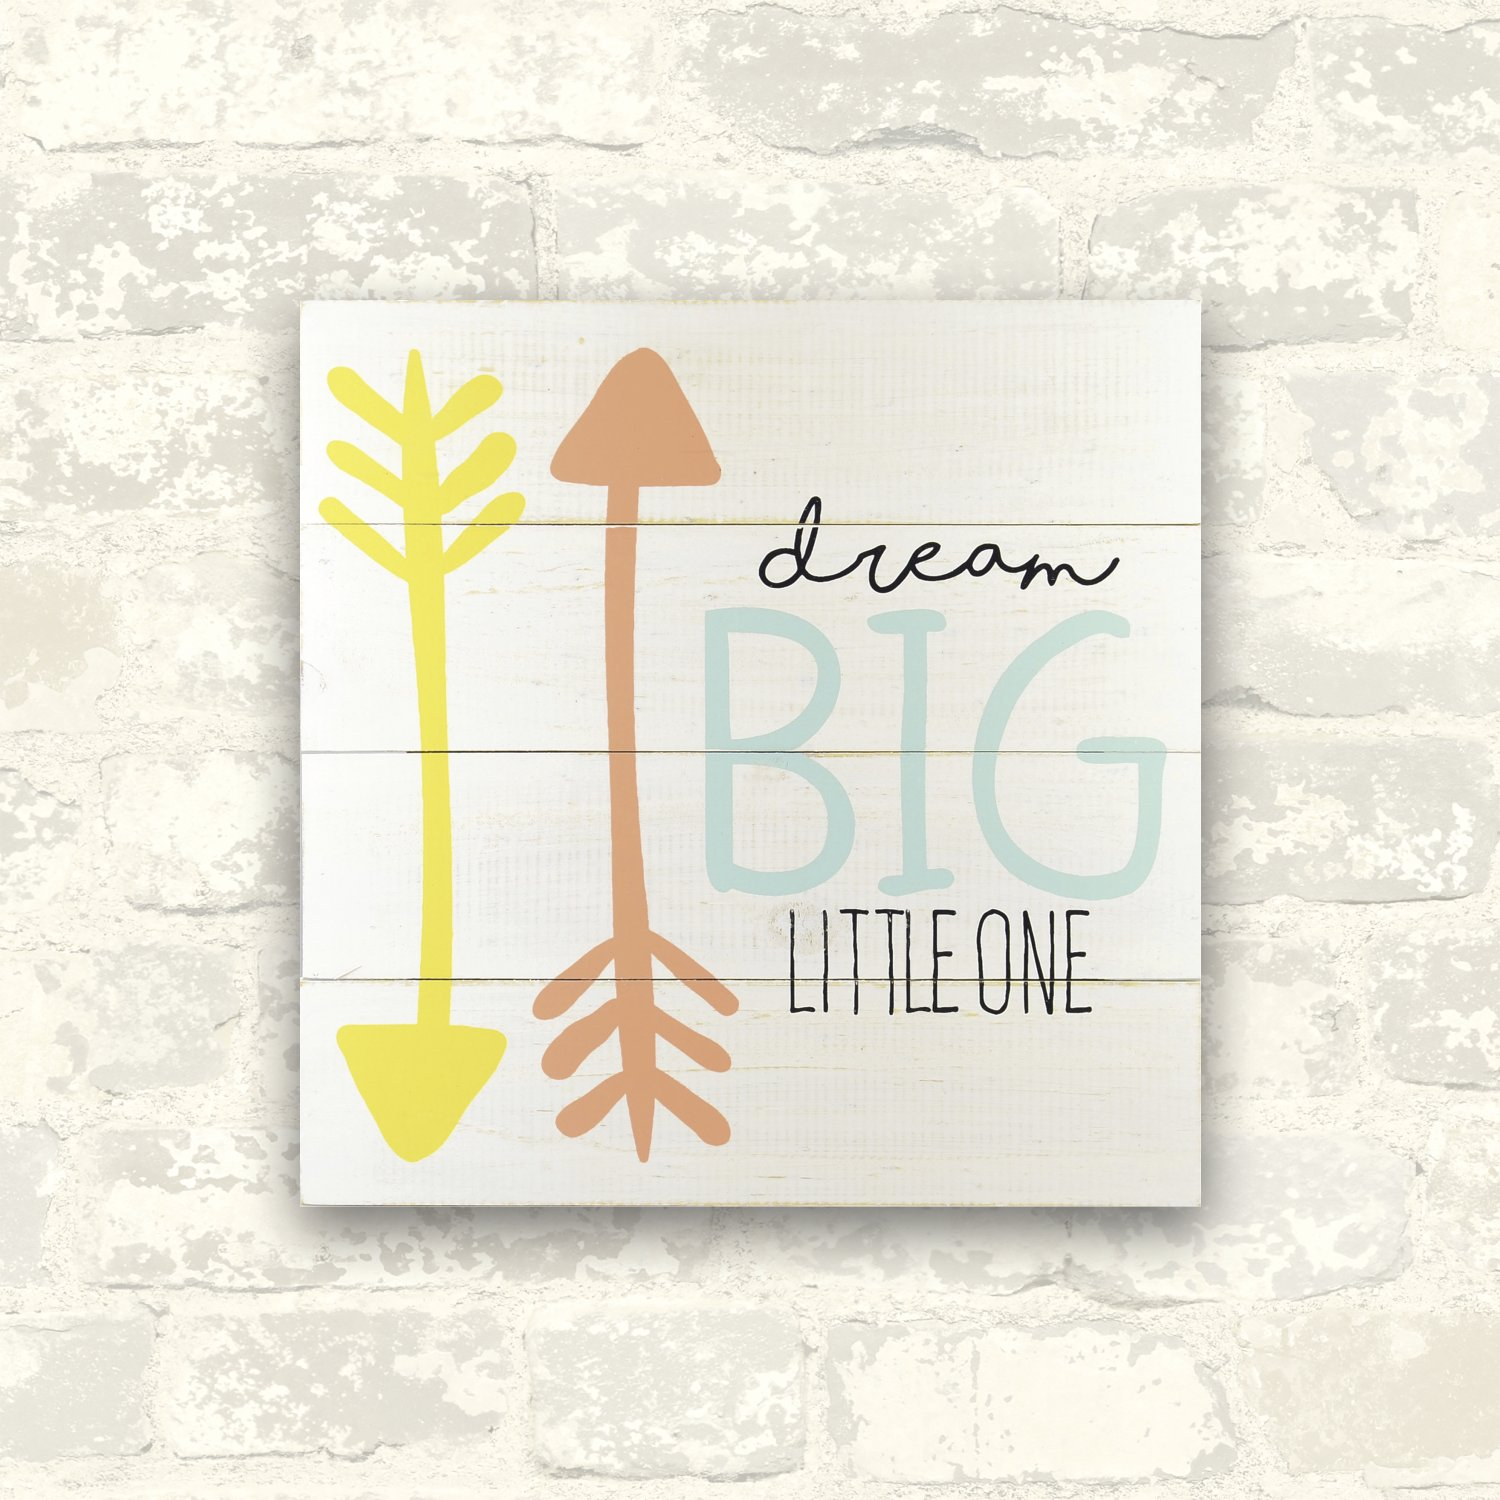 Linden Ave Wall Décor AVE10078 Dream Big Little One by Linden Ave (Image #2)